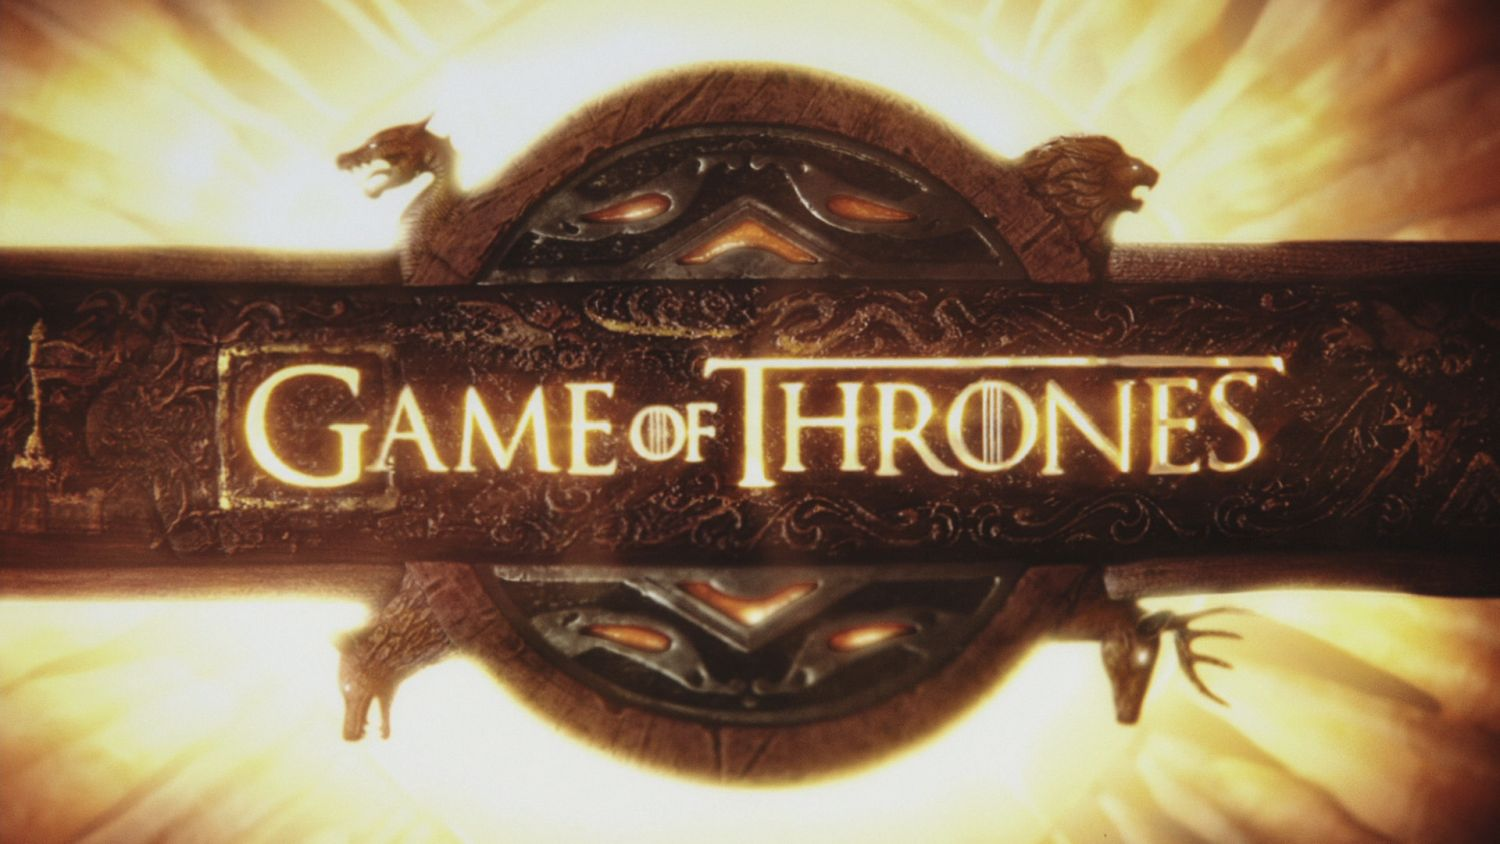 Hra o truny / Game of Thrones - 1.-7. serie (CZ)[TvRip][1080p] = CSFD 92%